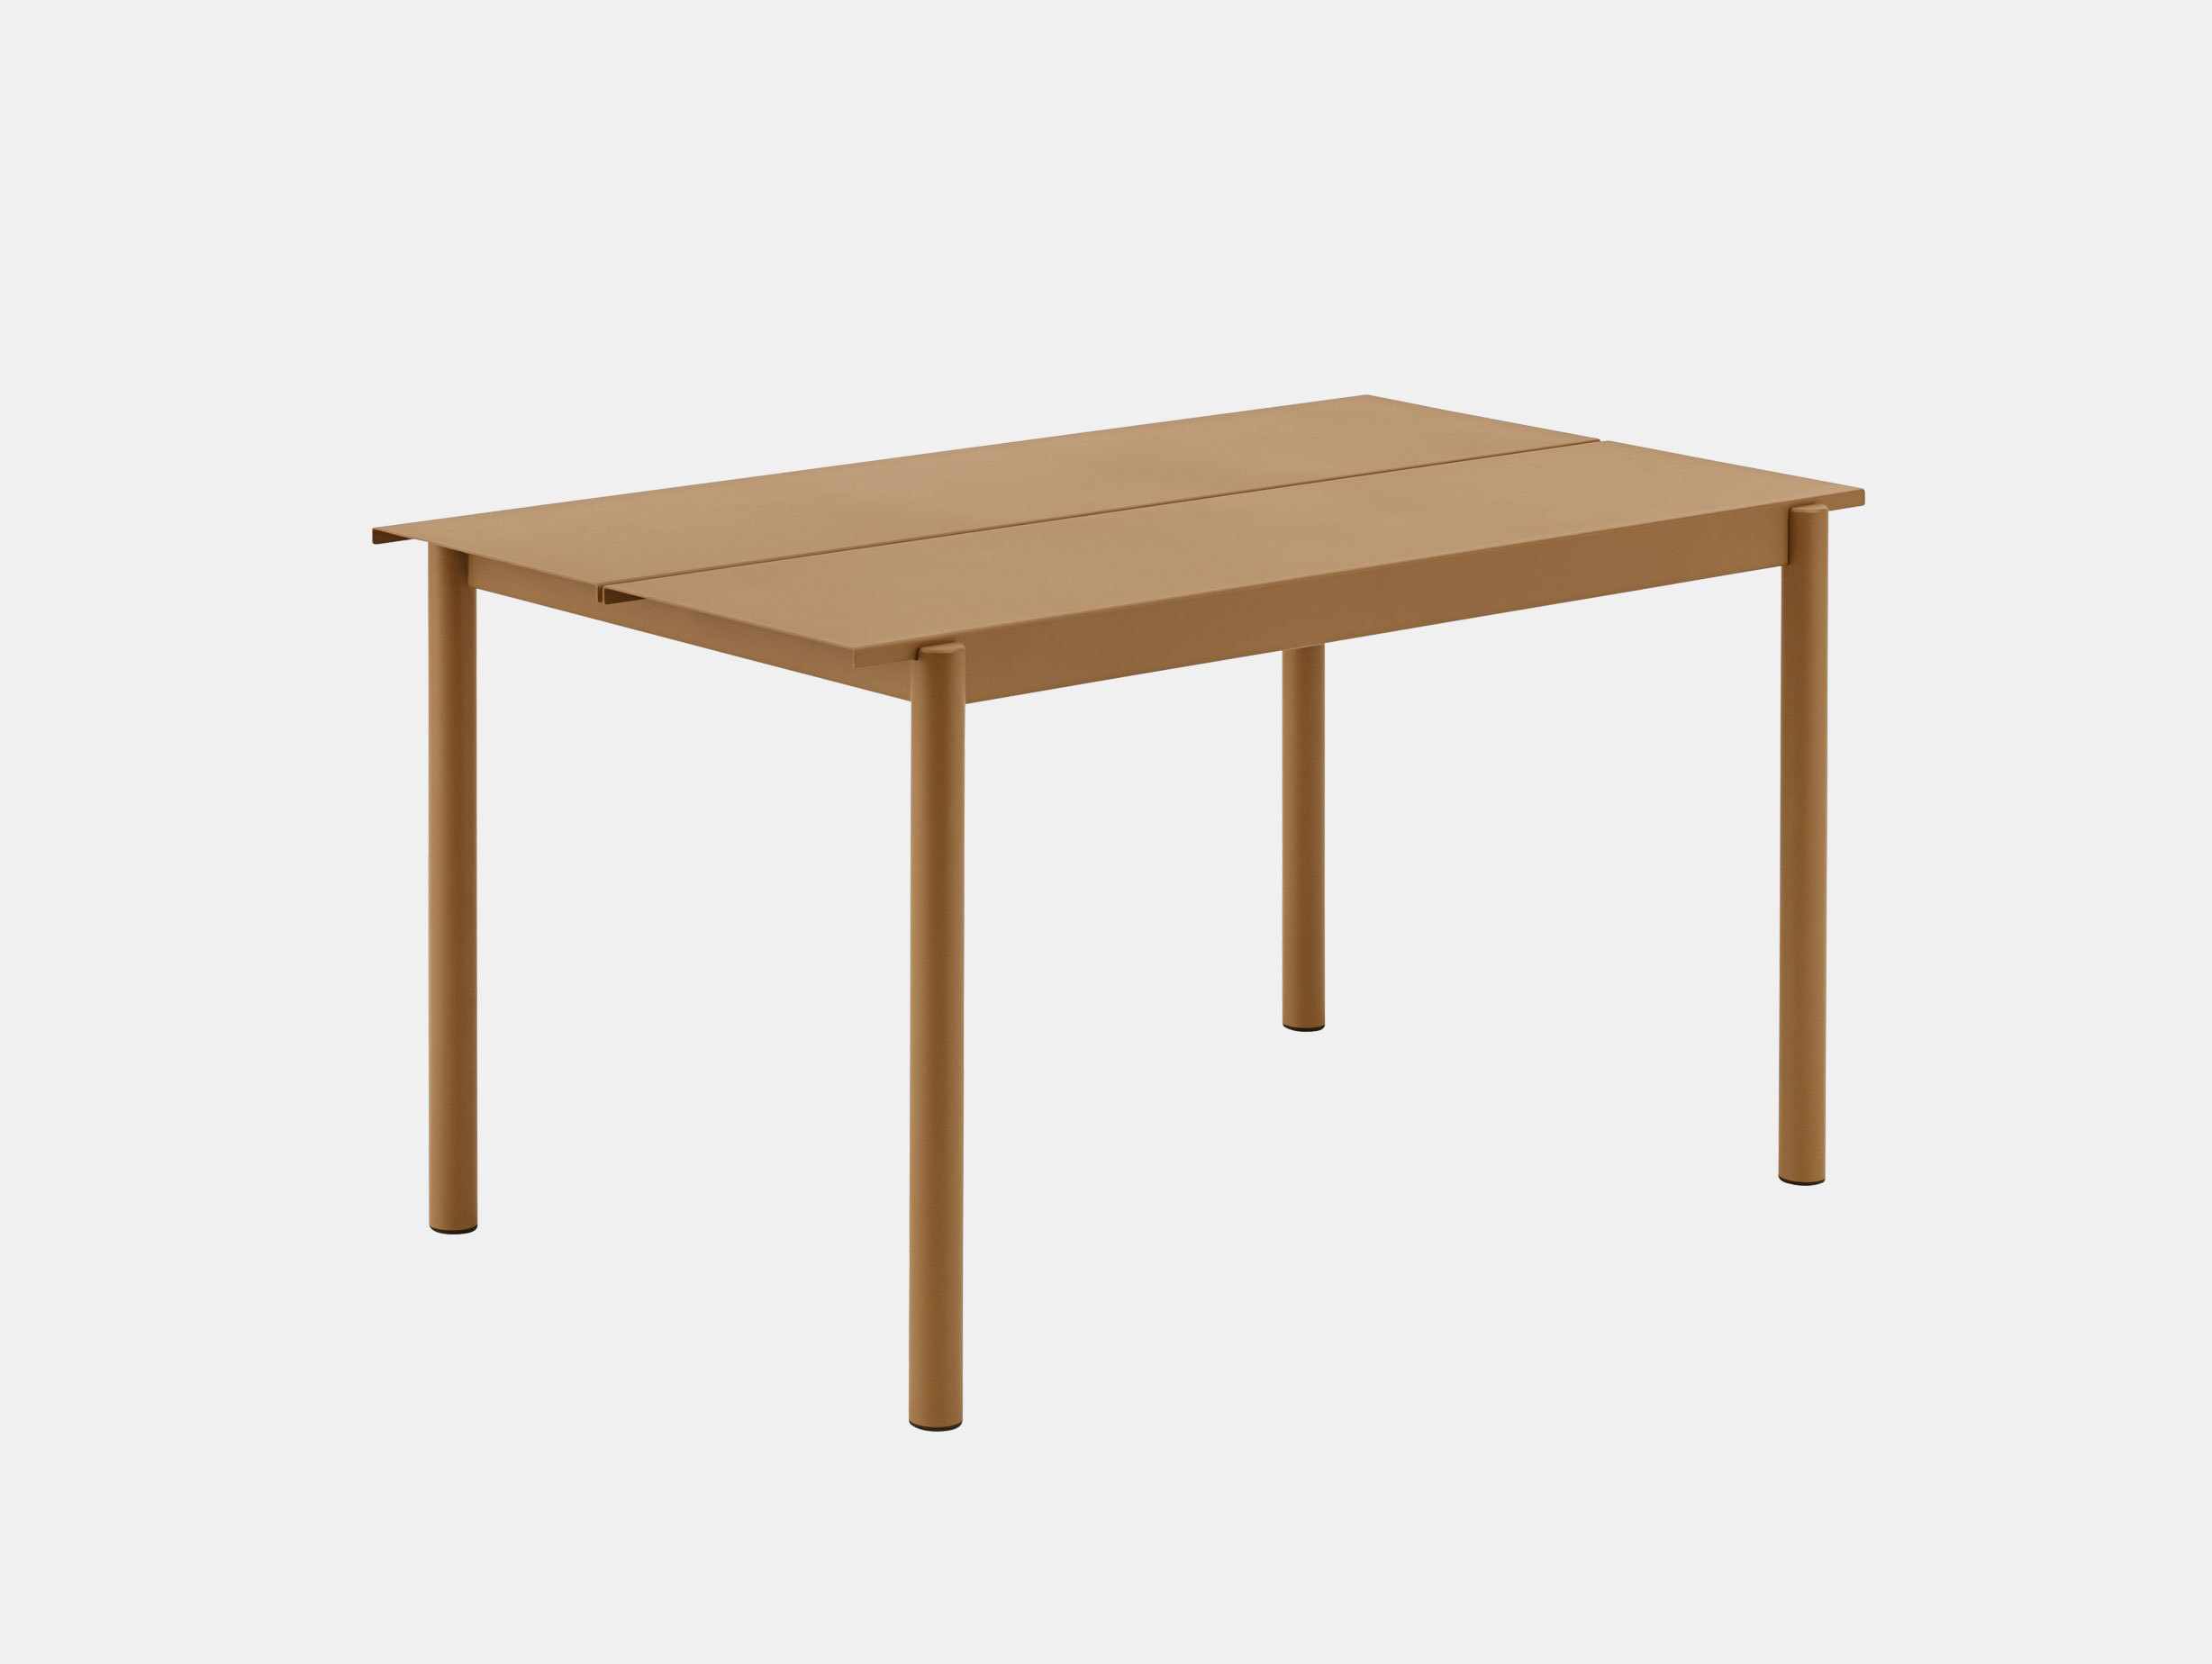 Muuto Linear Steel Outdoor Table L 140Cm Burnt Orange Thomas Bentzen